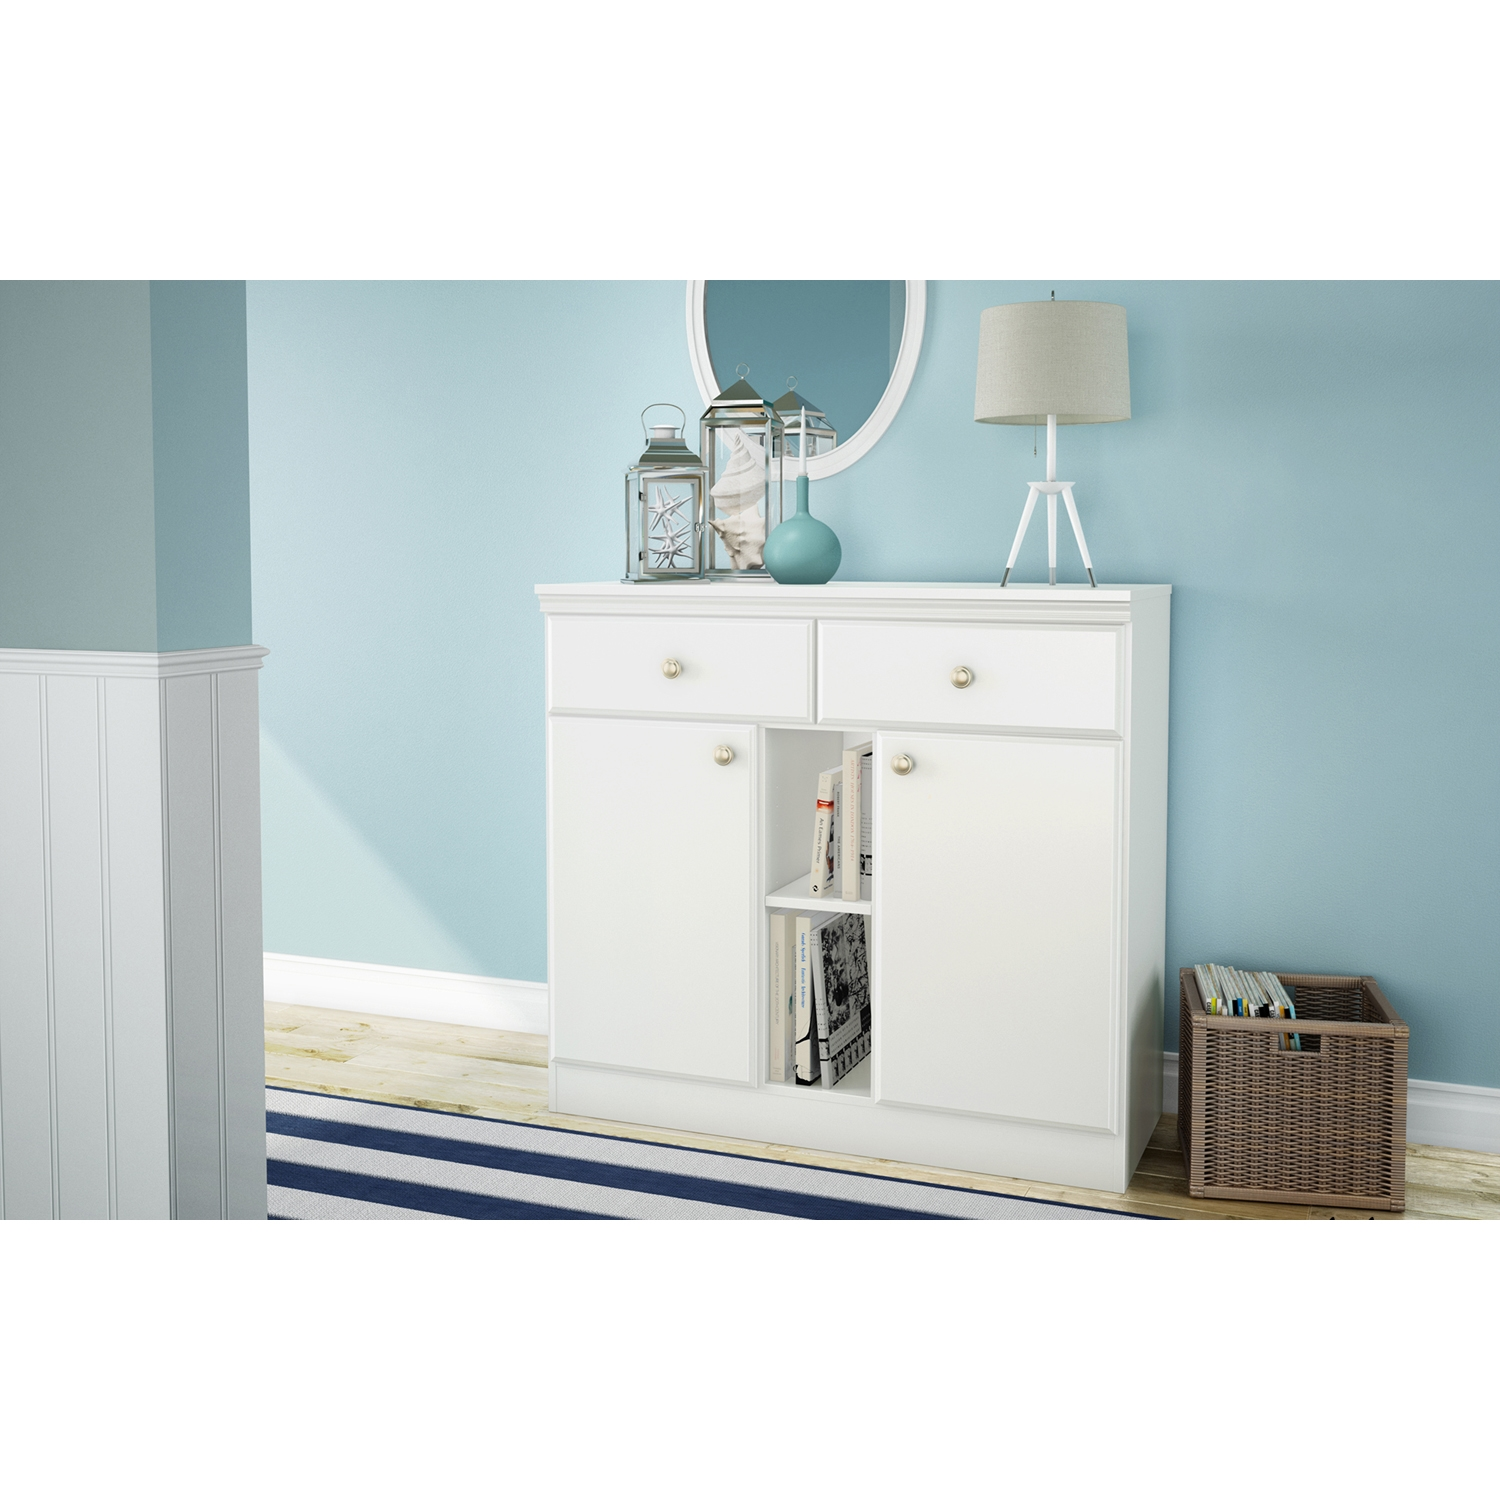 Morgan Sideboard - 2 Doors, 2 Drawers, Pure White - SS-7260770